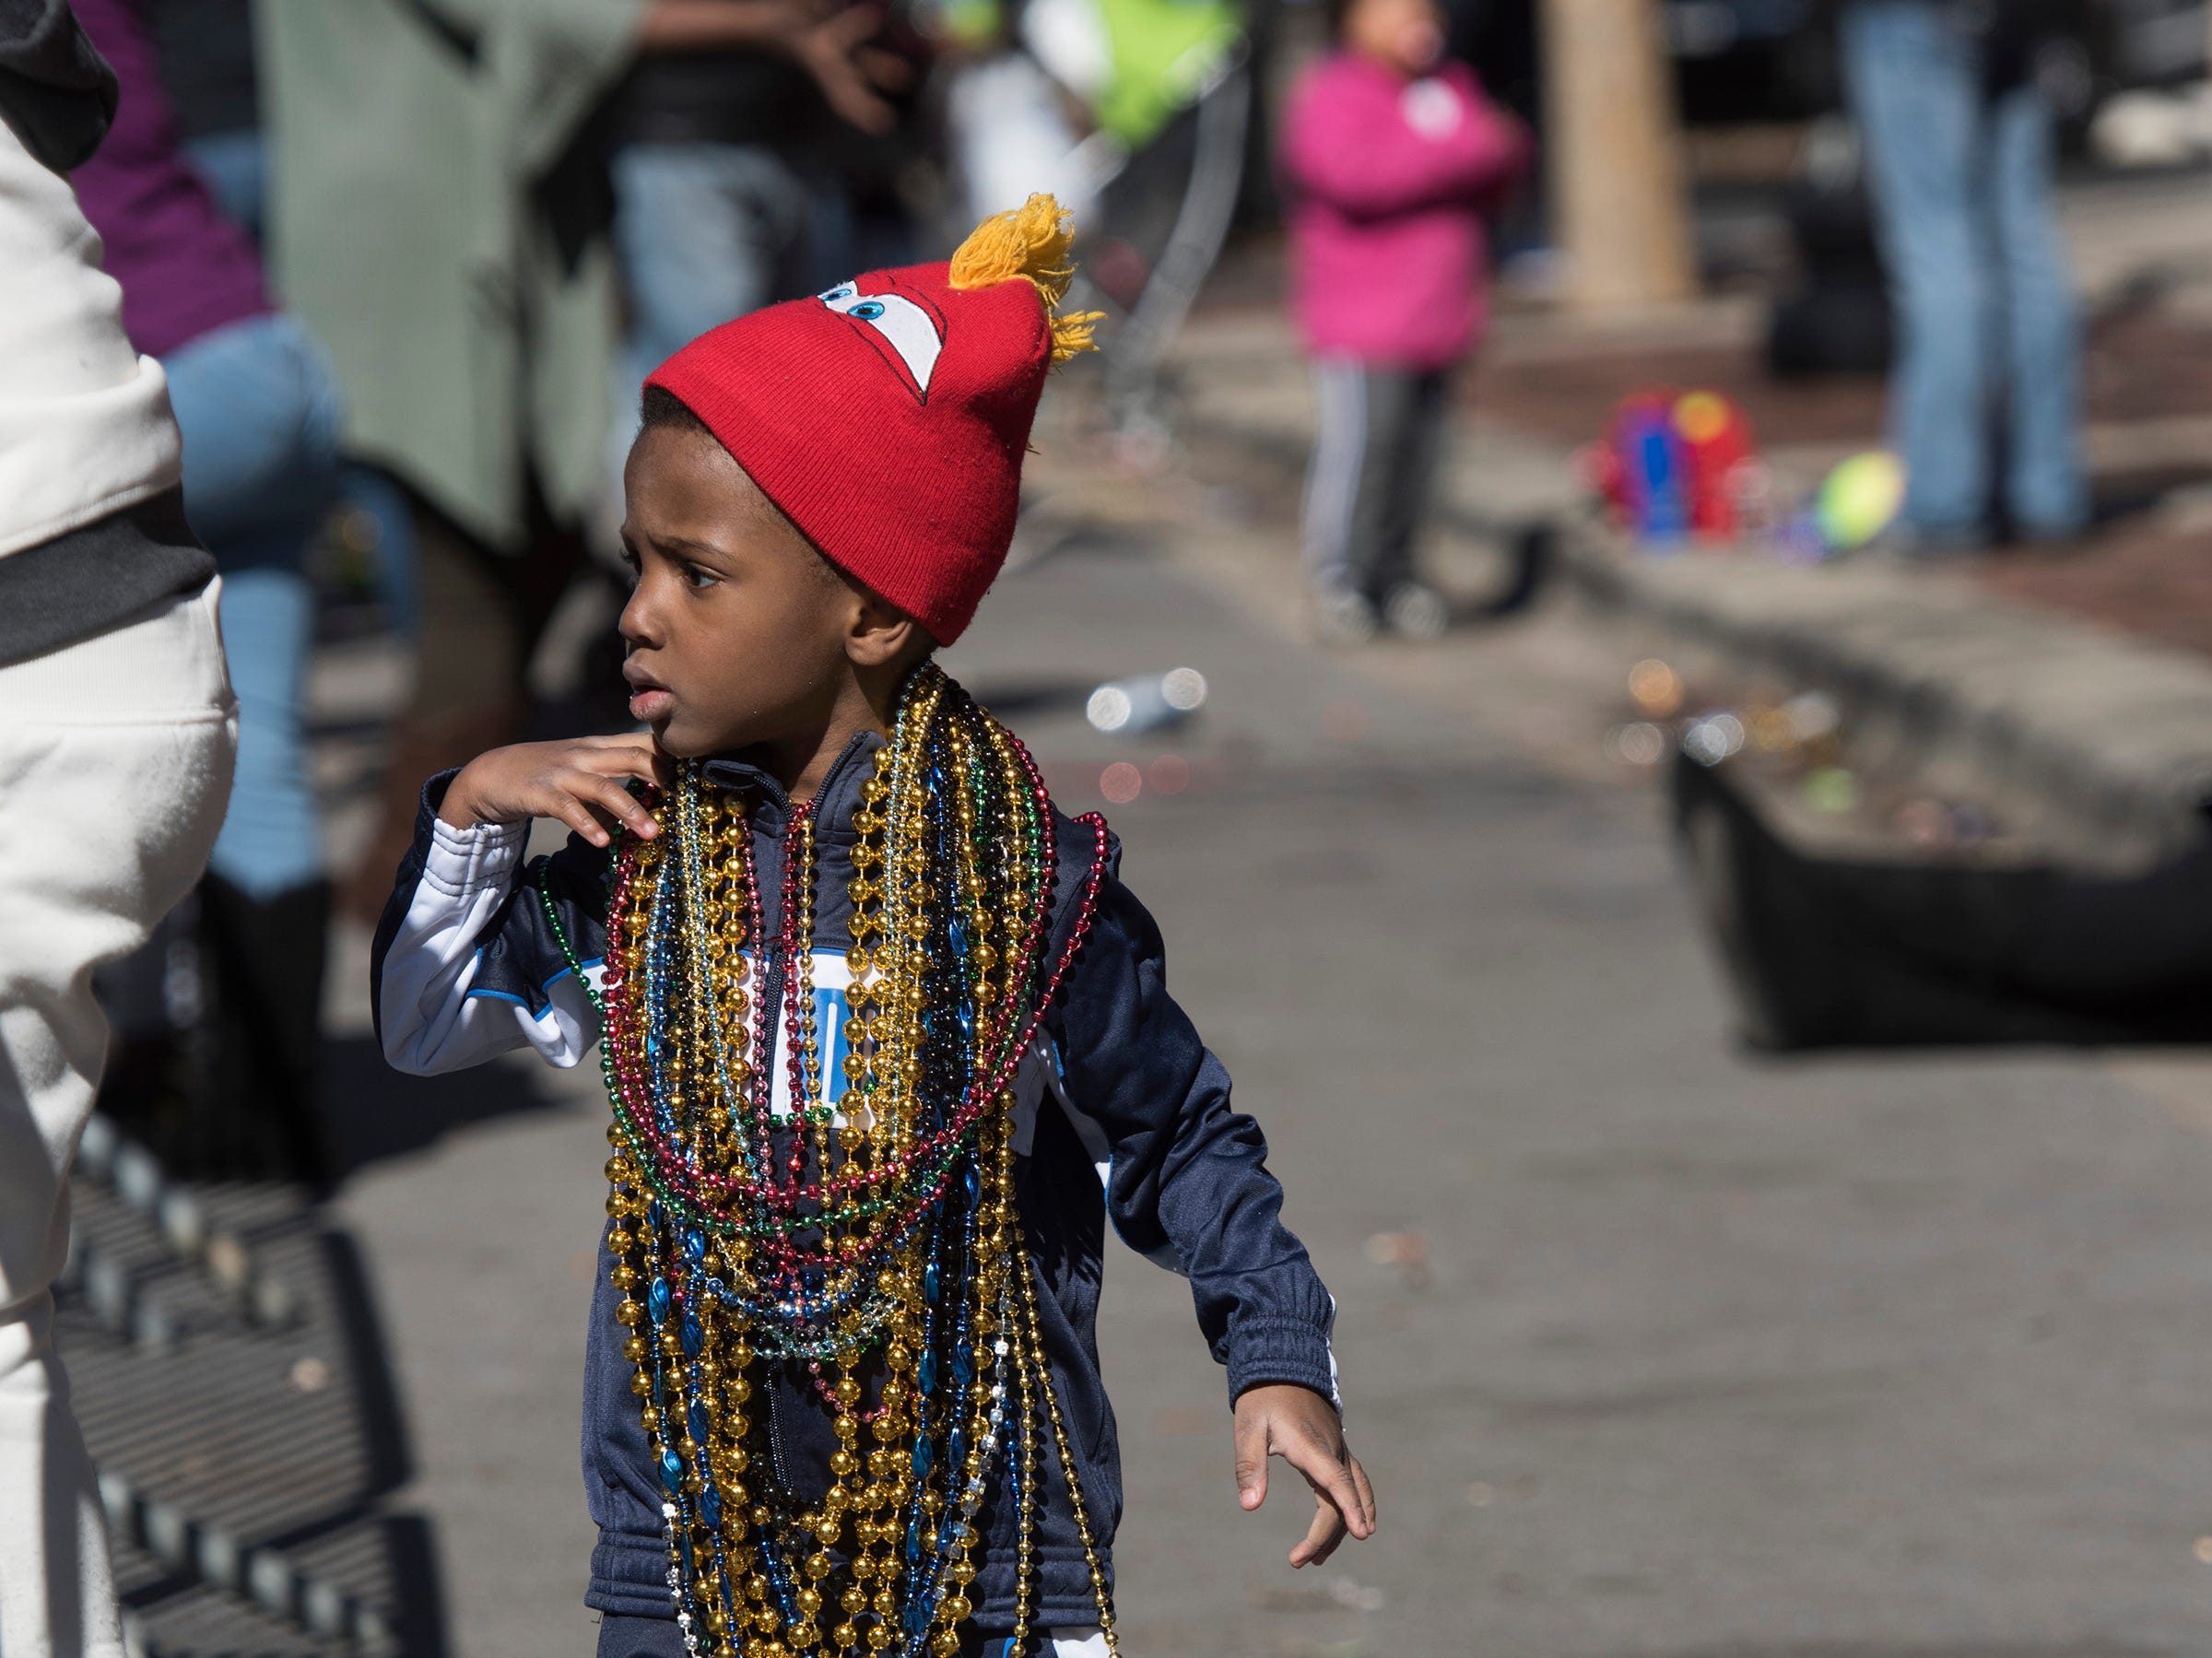 Jakayden Bryant, 4, gets loaded up with beads and other throws during the annual Martin Luther King, Jr., parade in downtown Pensacola on Monday, Jan.21, 2019.